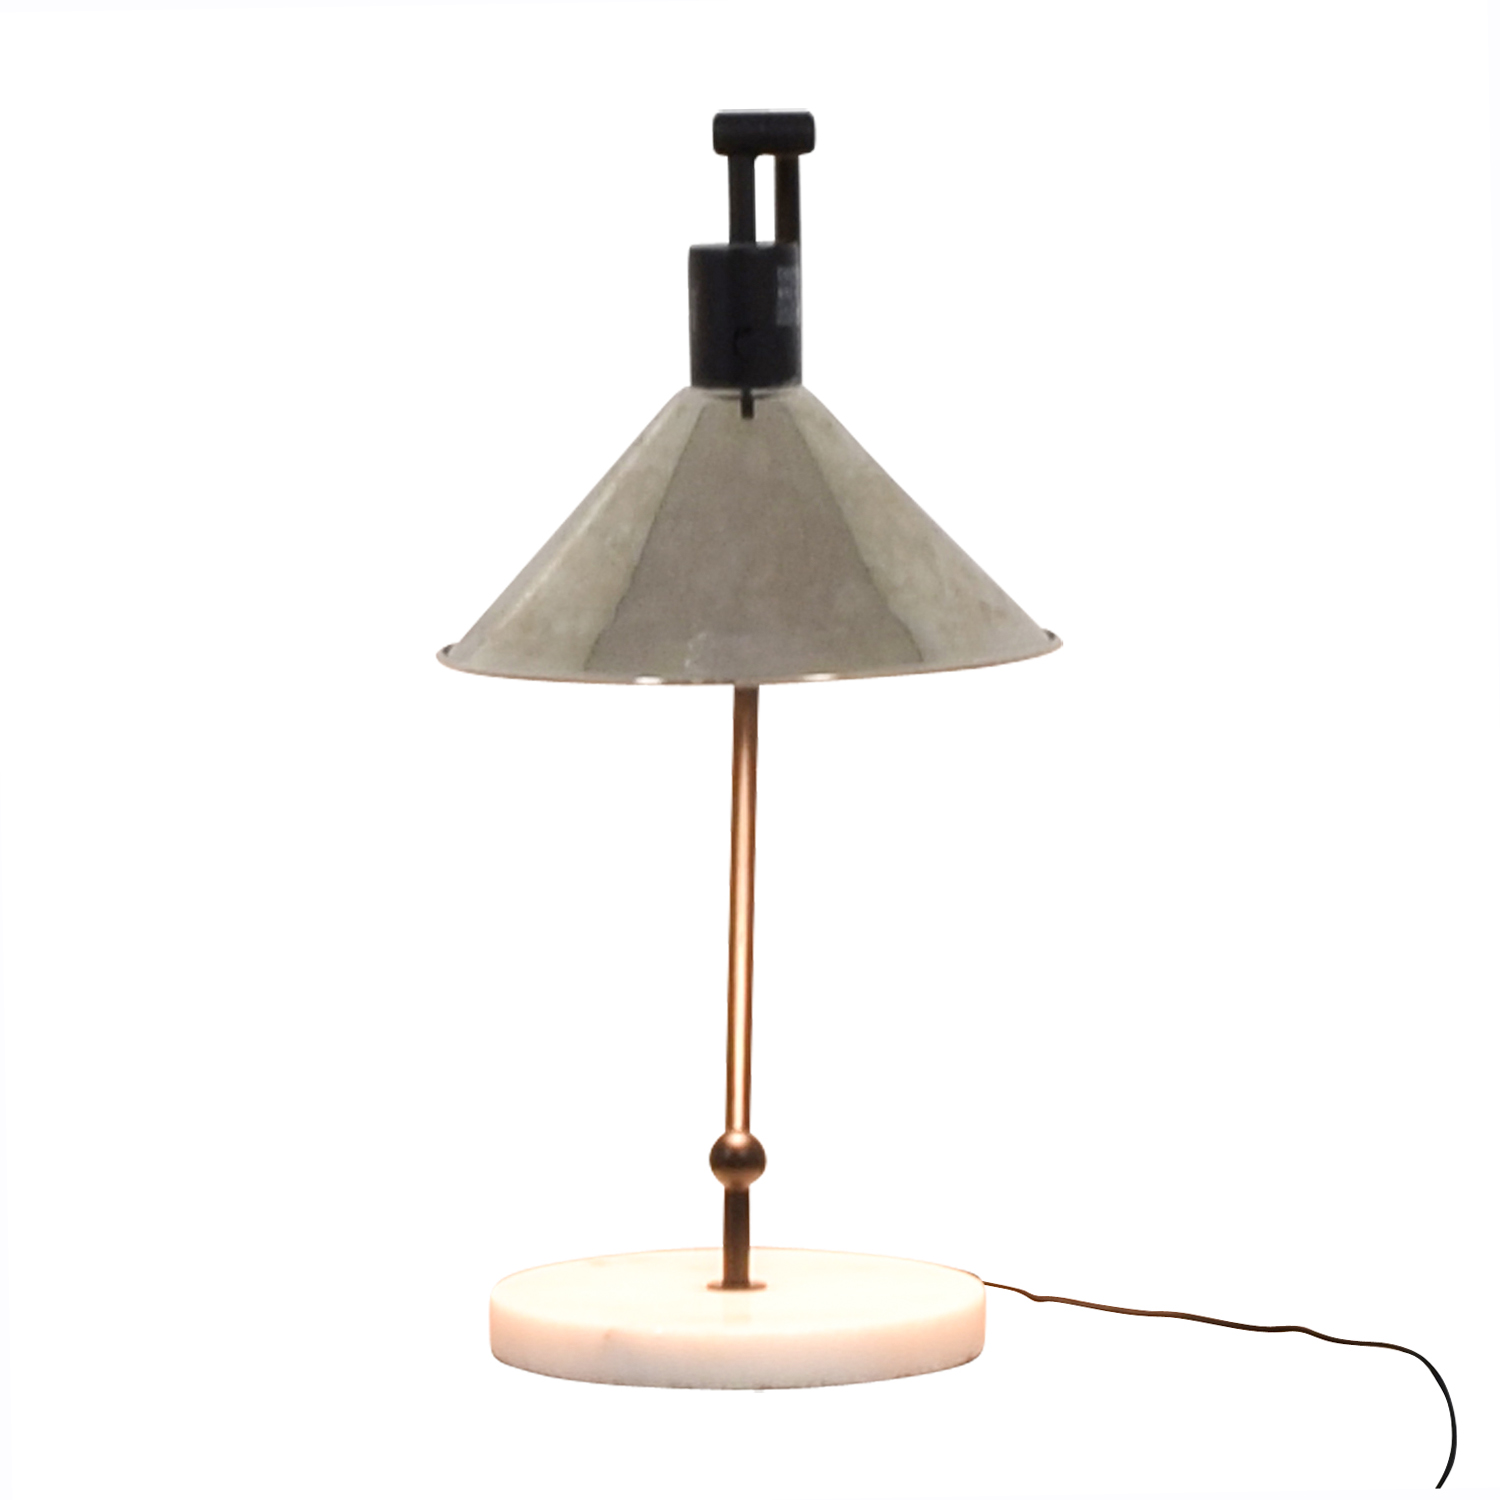 CB2 CB2 Gris Table Lamp used